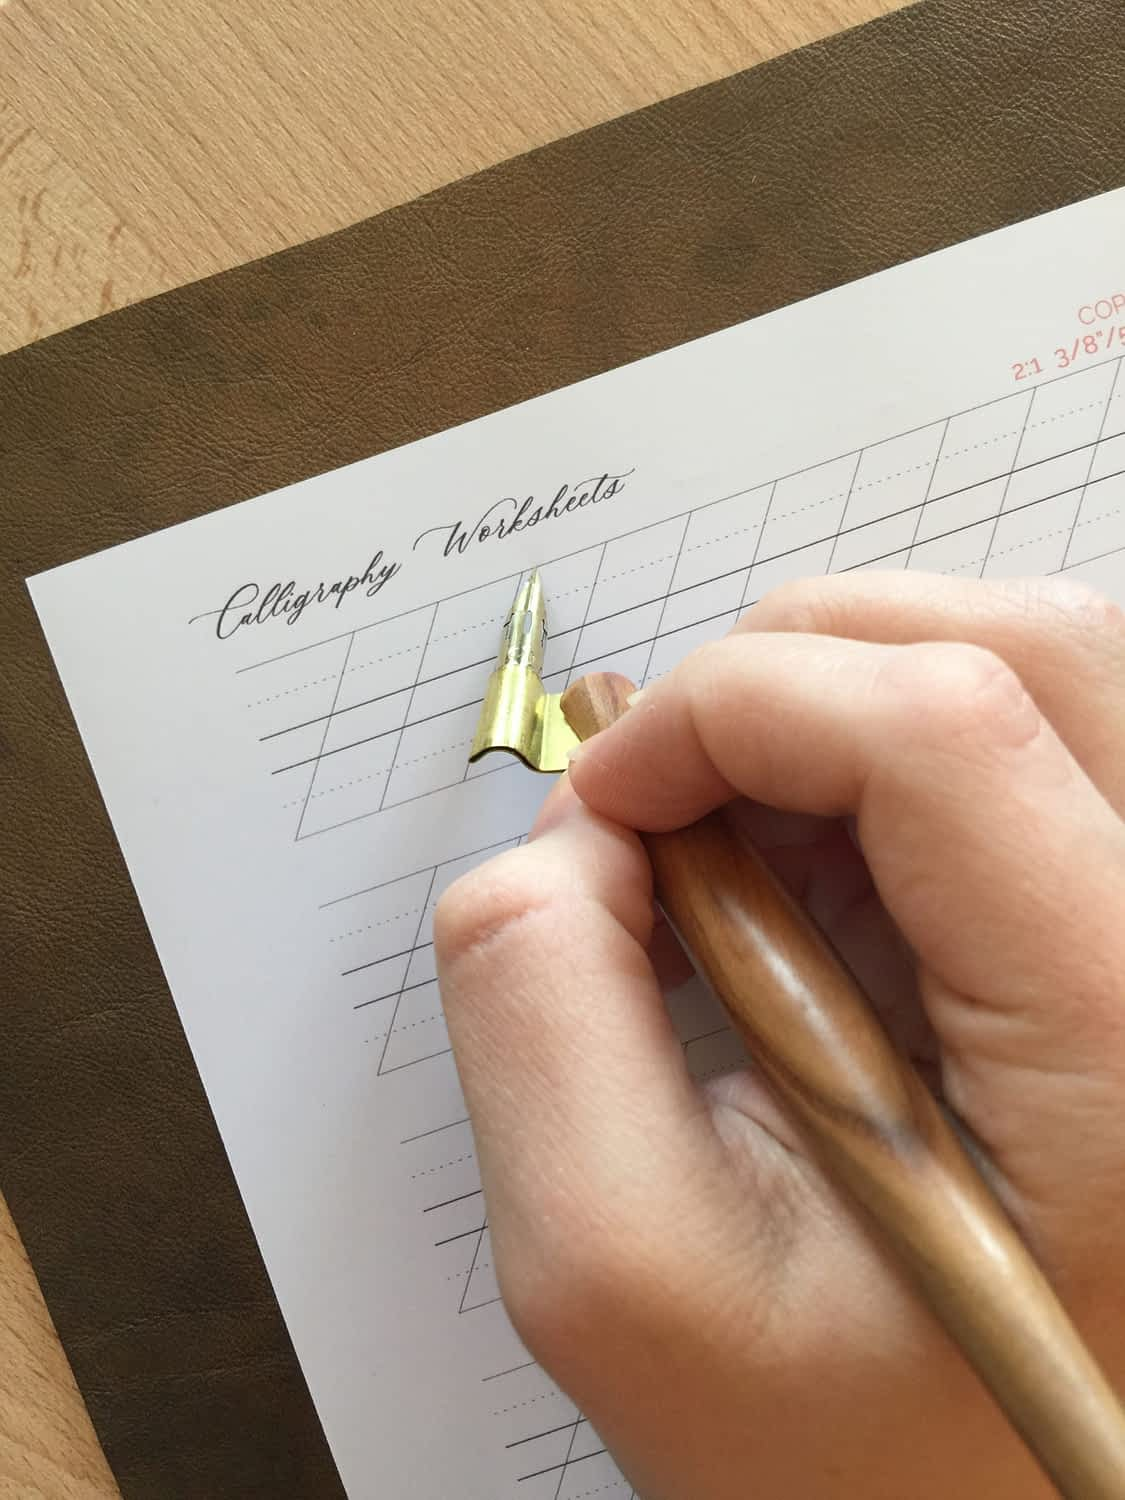 align your flange with the slant line on the paper